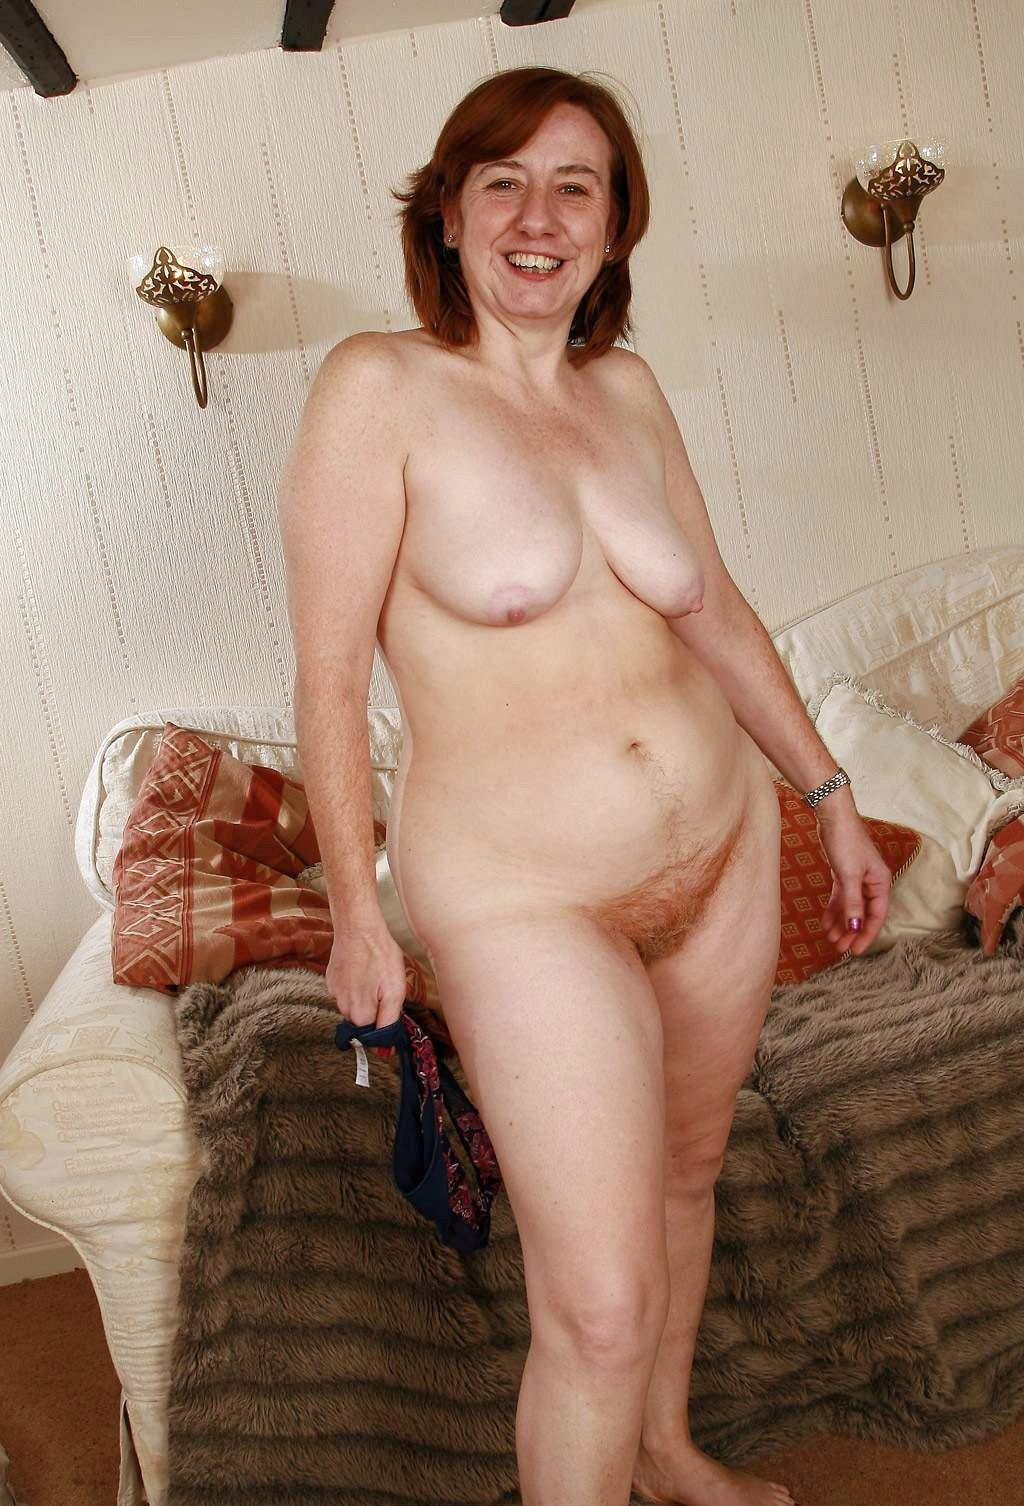 Tits mature woman with saggy